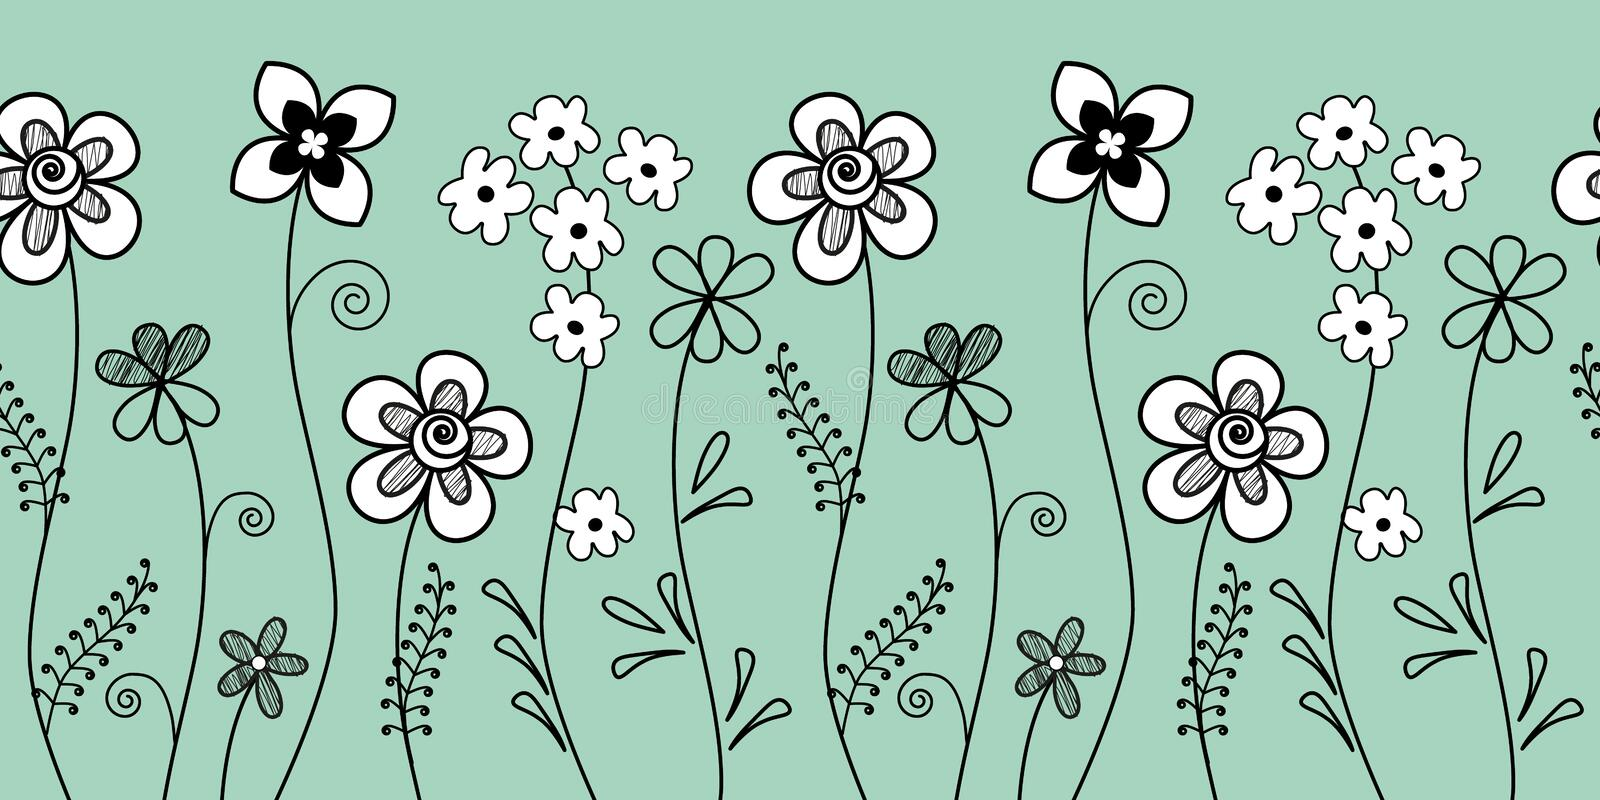 Floral border. Seamless pattern with white and black decorative flowers on a blue background royalty free illustration